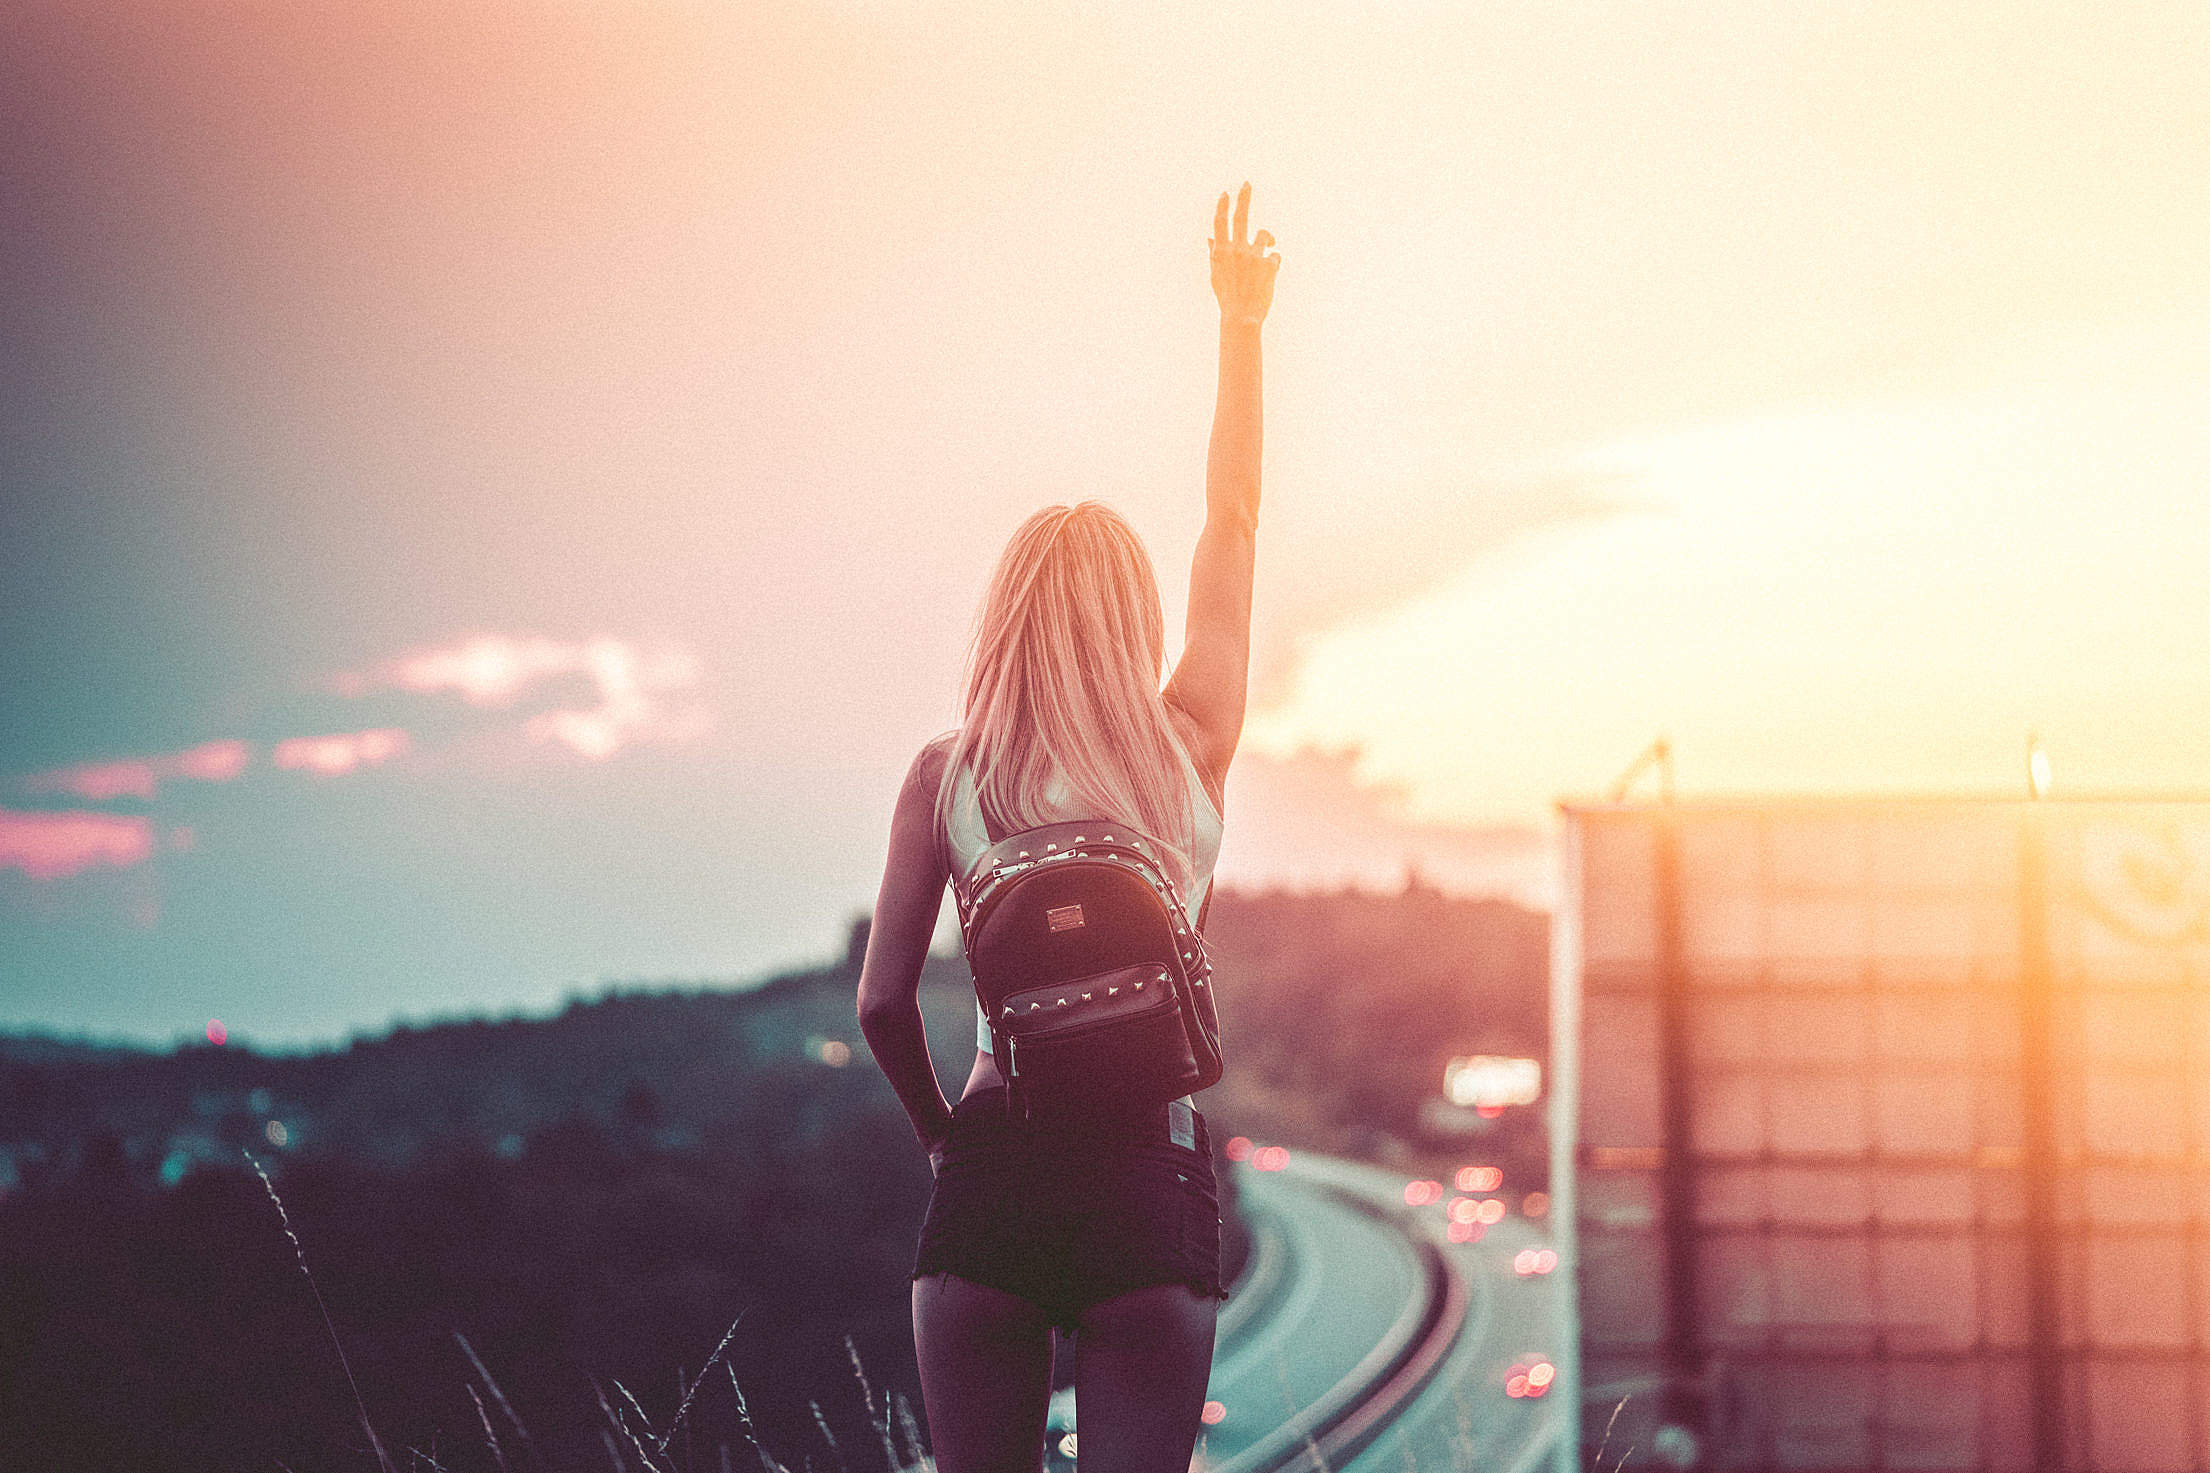 Young Woman Enjoying Freedom in the Summer Evening Free Stock Photo